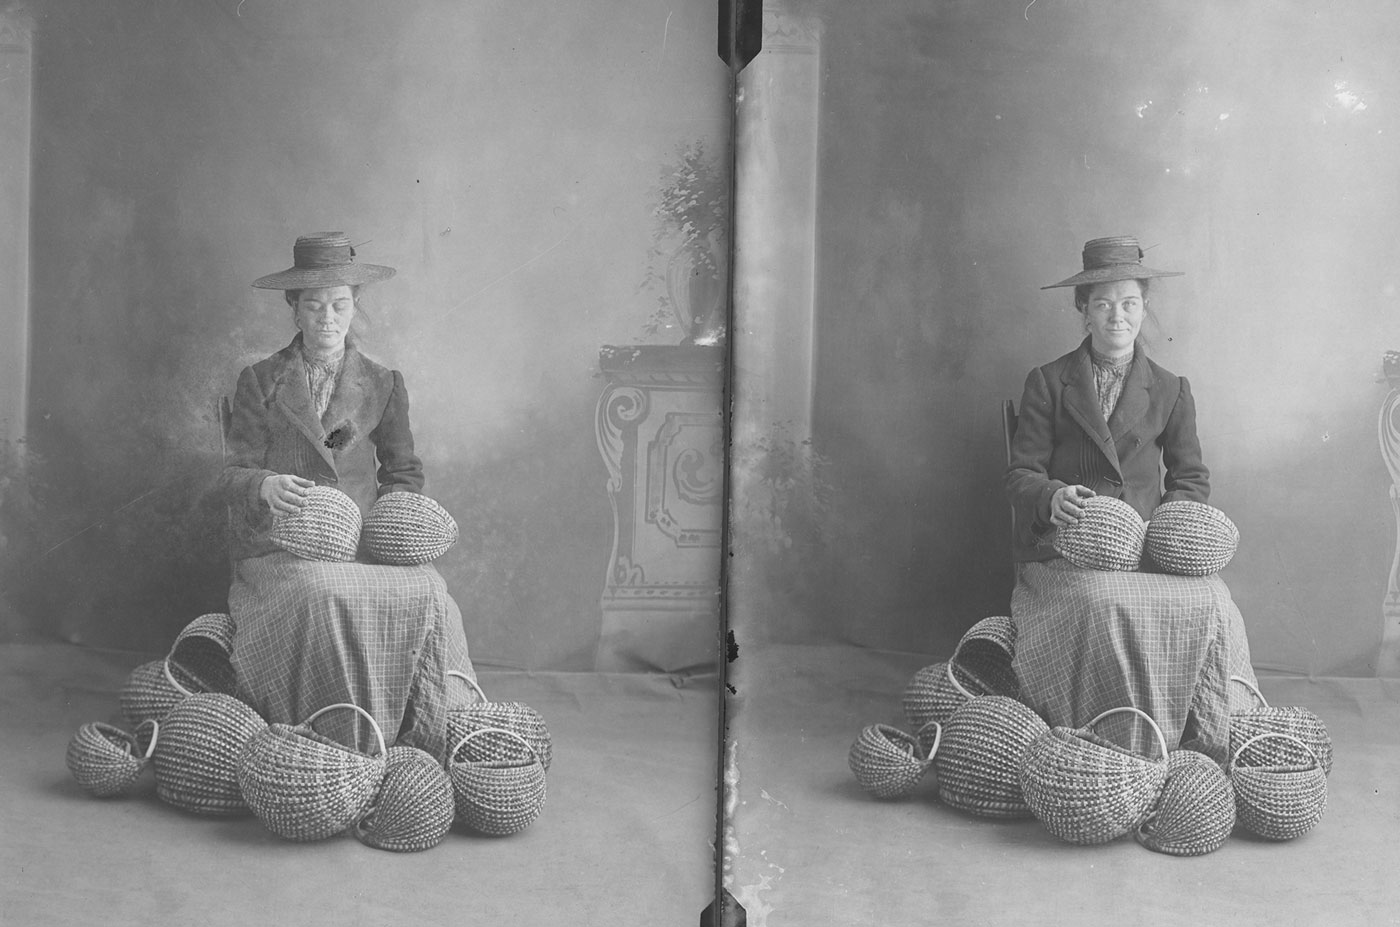 Old black and white image. Two similar images side-by-side. In the left image, a basket maker is looking down at her baskets. In the right, she looks at the camera.